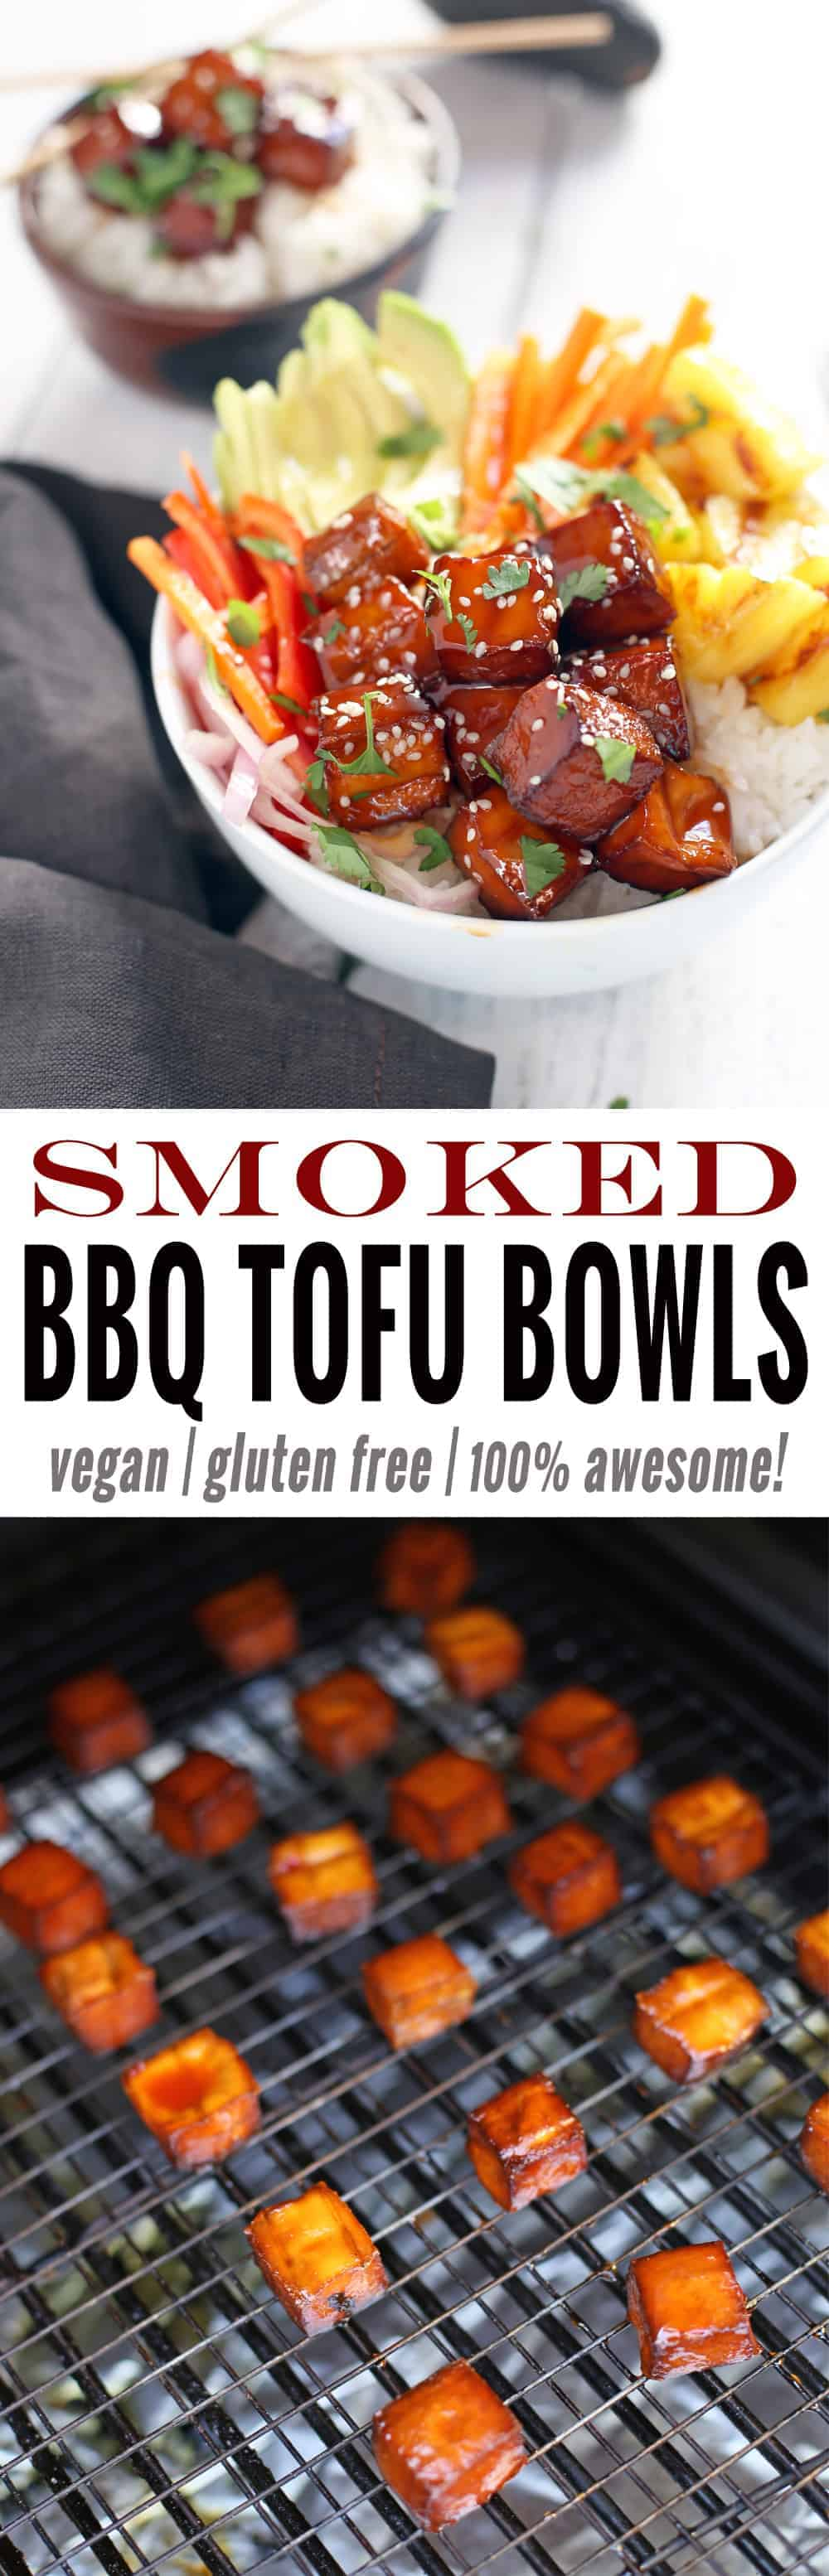 Smoked BBQ Tofu Bowls with grilled pineapple, vegan and gluten free. An awesome bbq recipe sure to please vegans and meat-lovers alike!